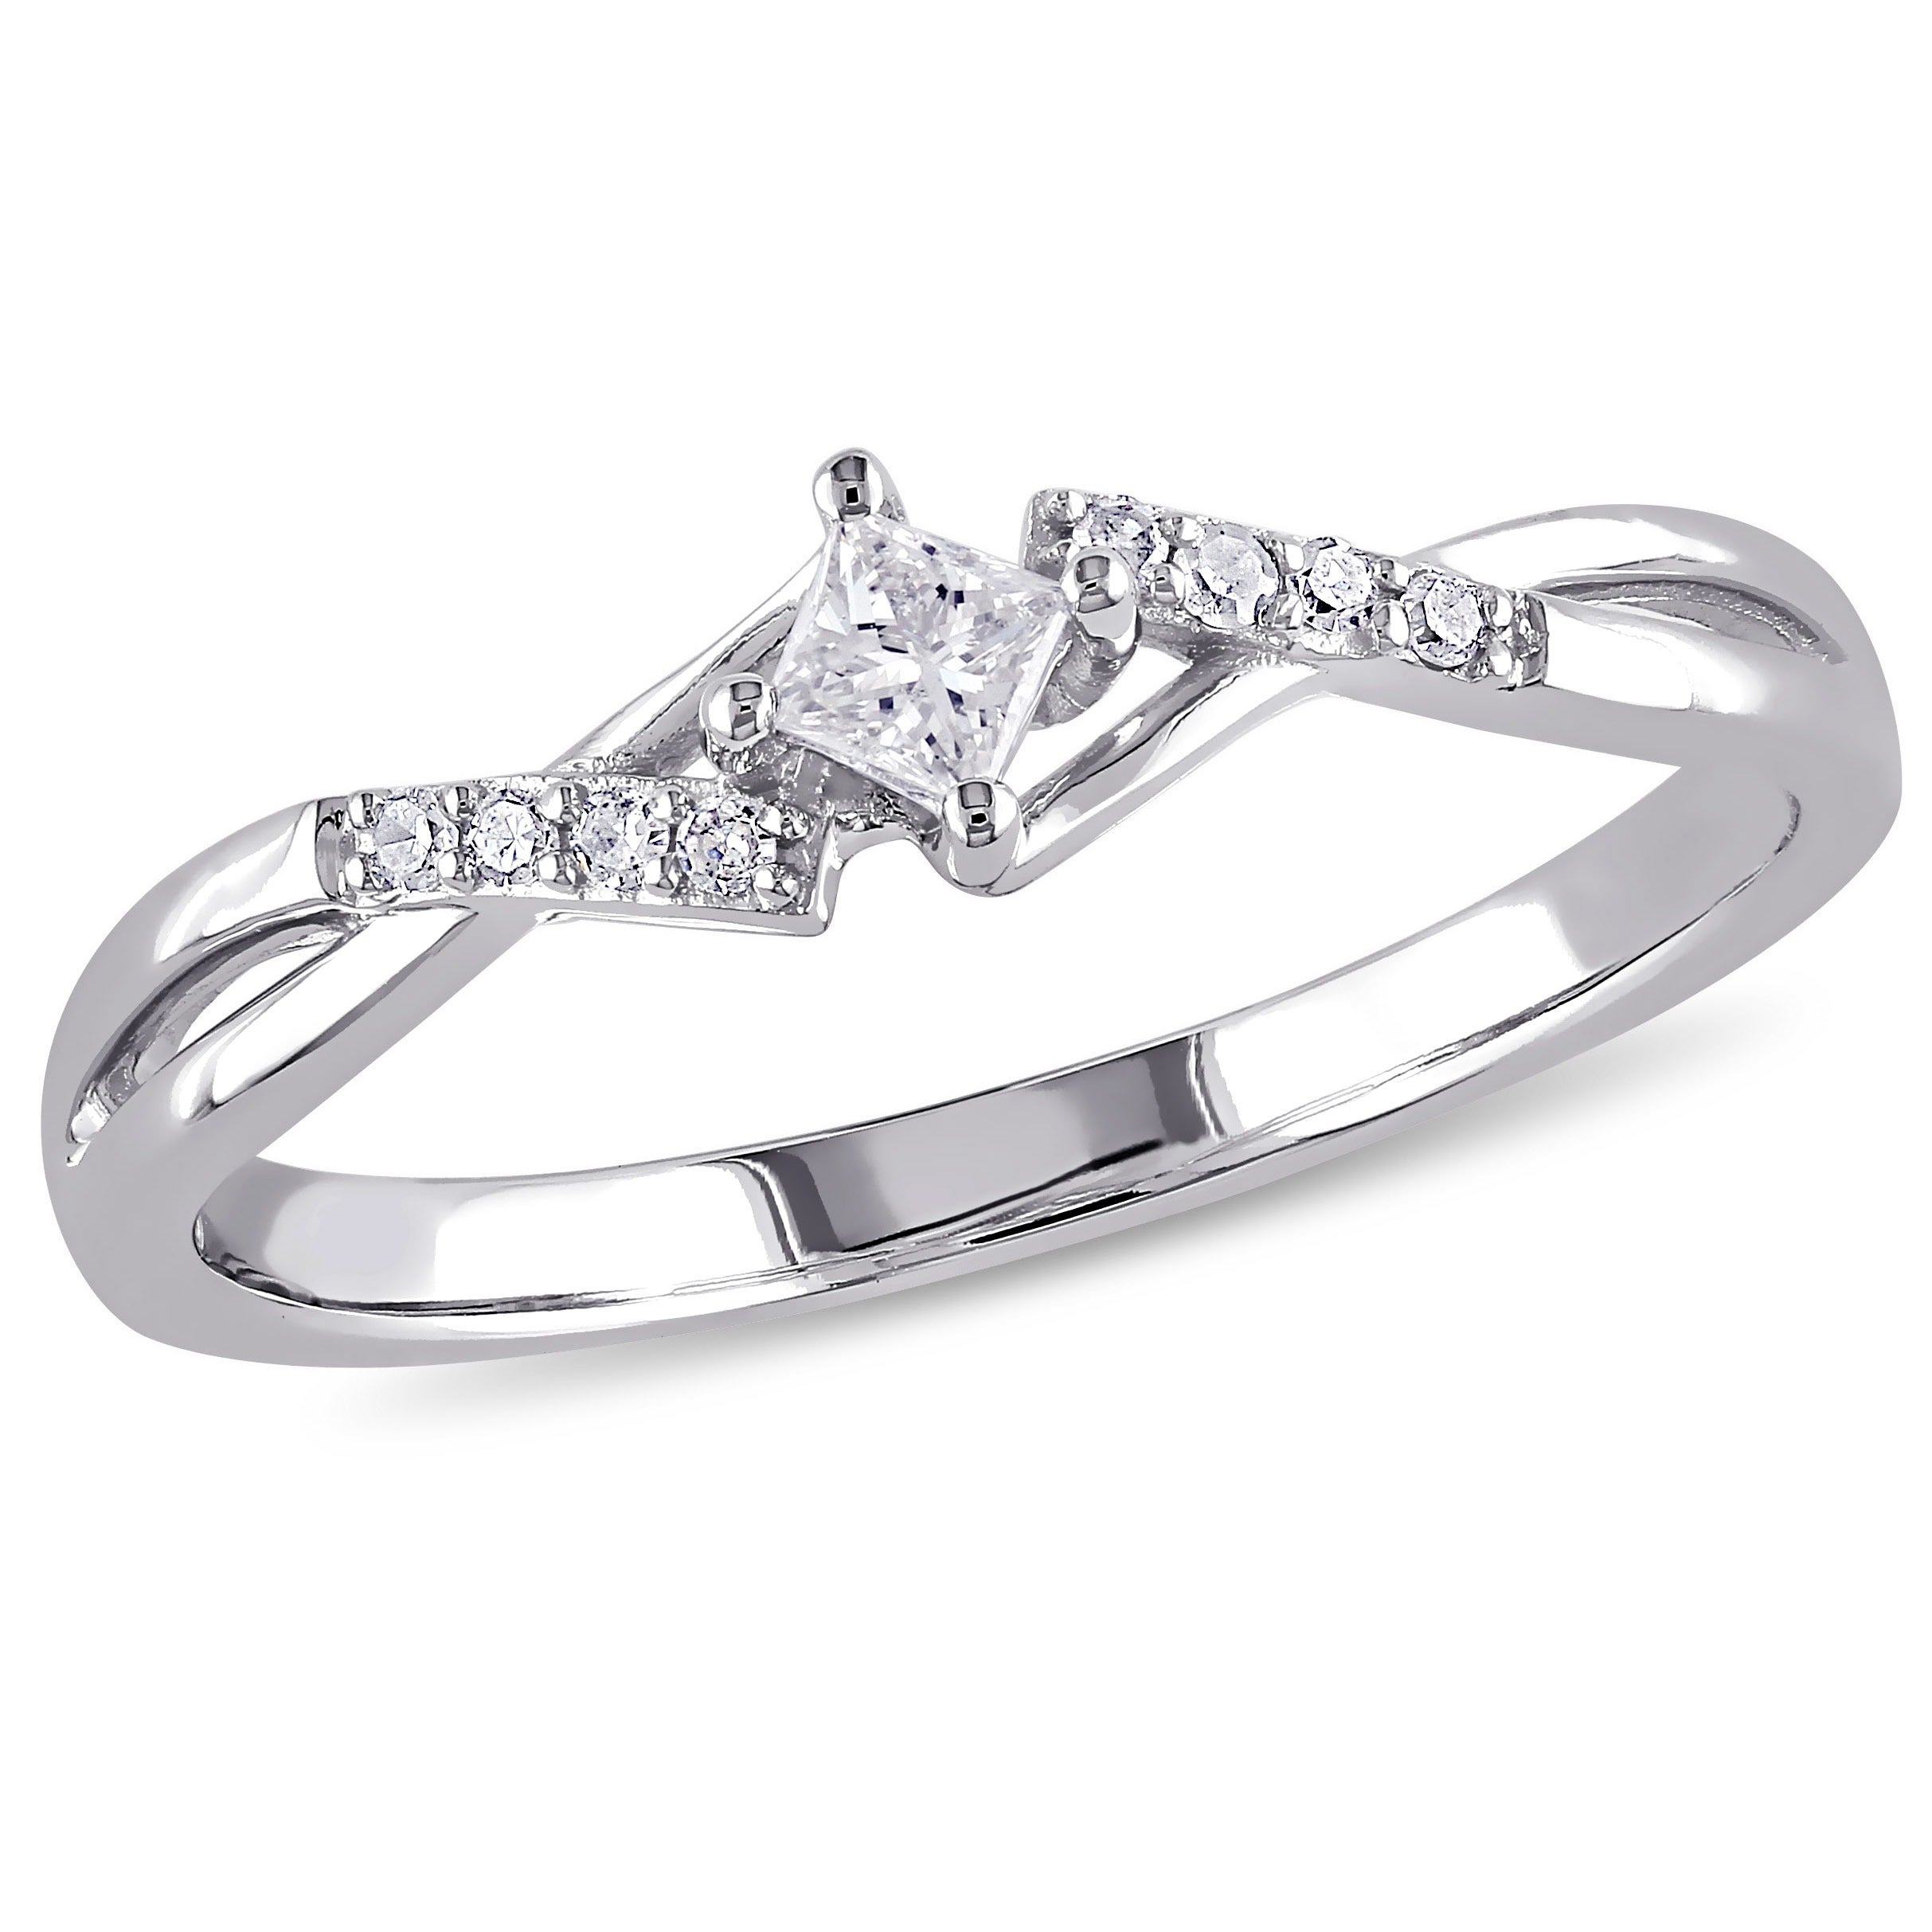 rings her engagement view attachment for irish gallery full walmart team brilliant wedding of new promise appealing